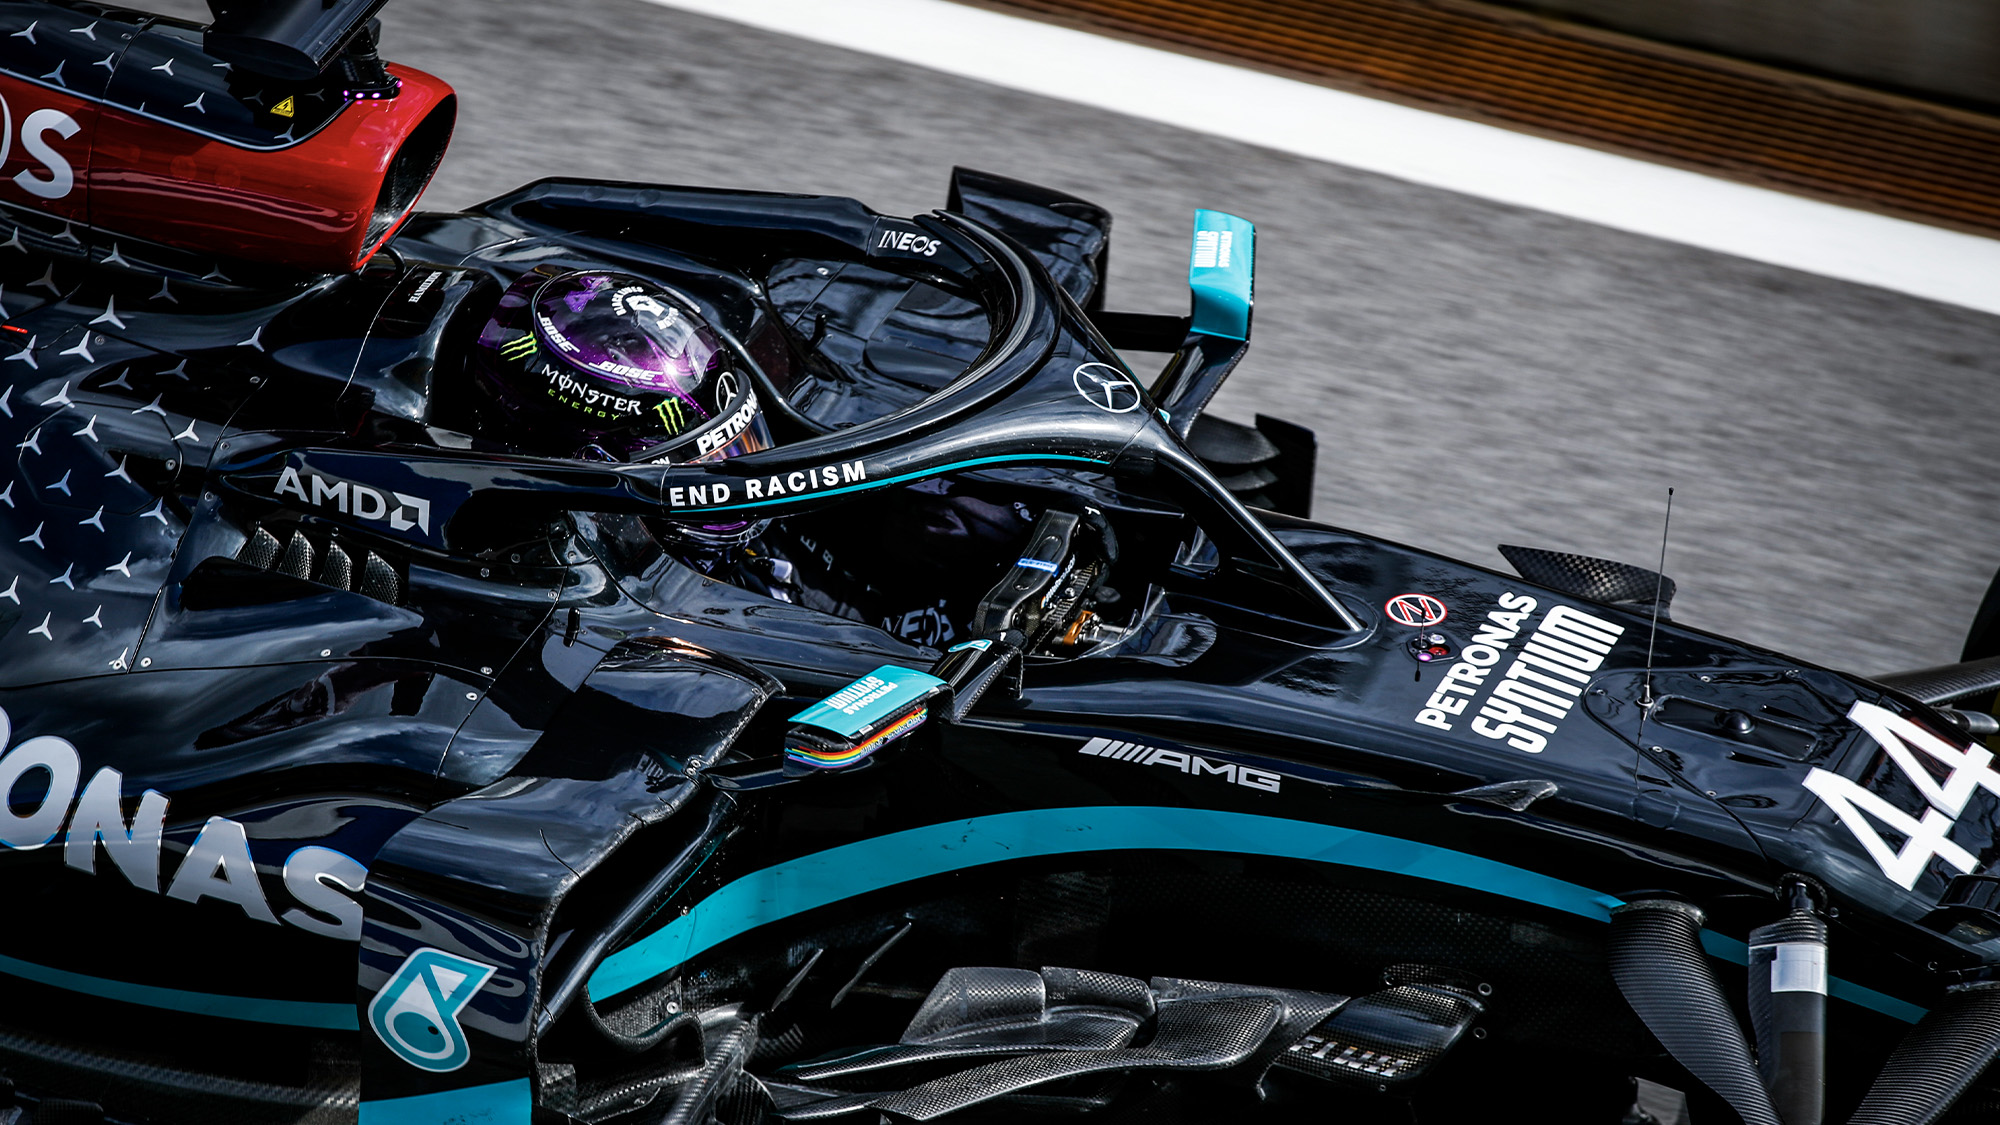 Lewis Hamilton in the cockpit of his Mercedes W11 during practice ahead of the 2020 Austrian Grand Prix